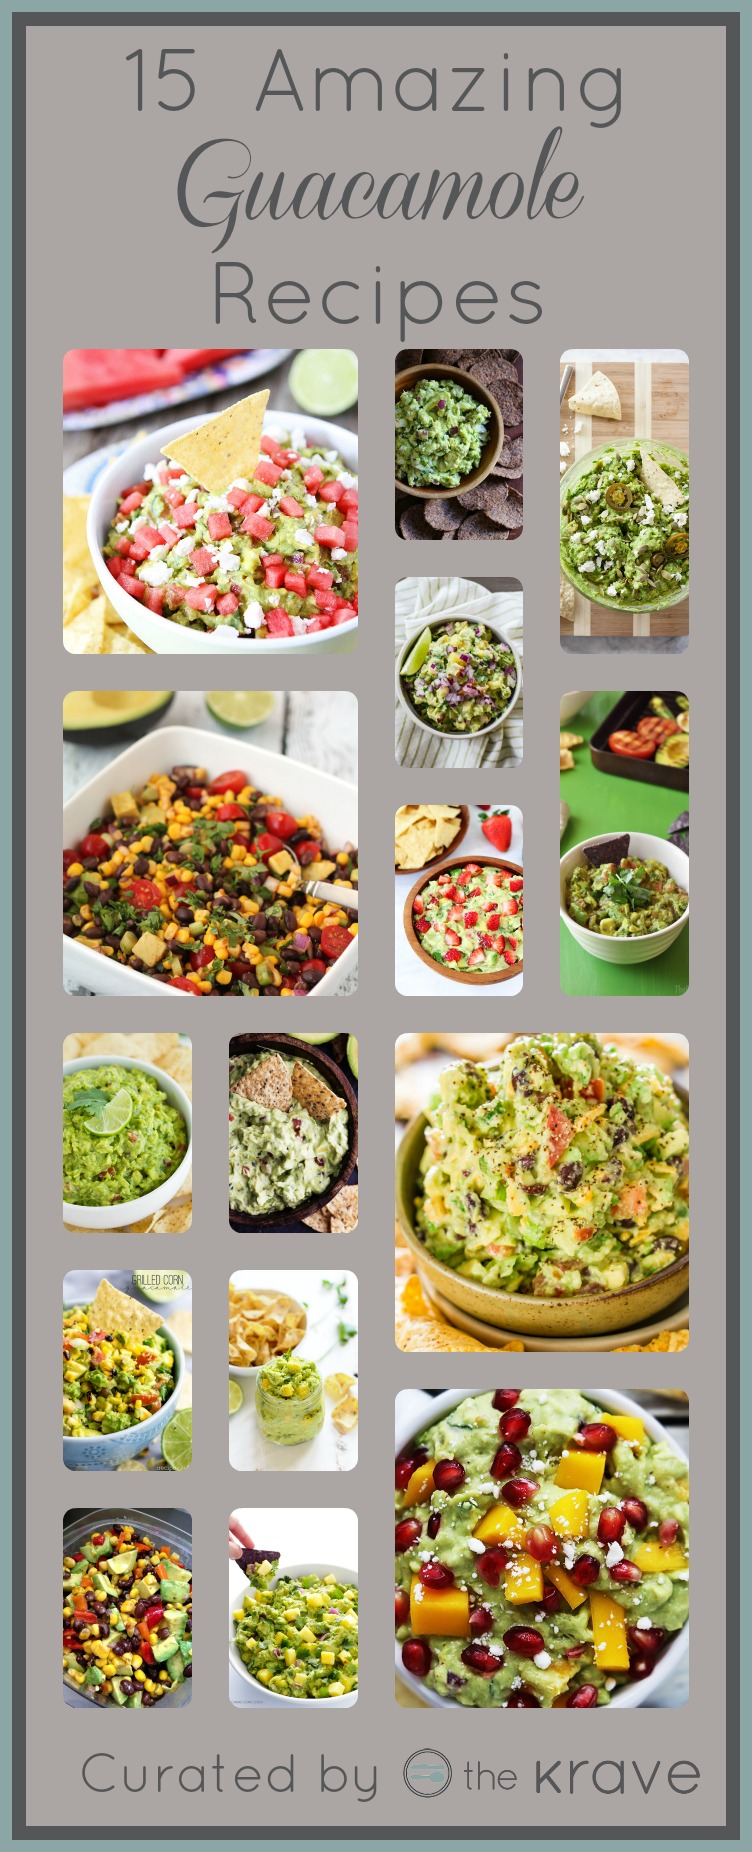 guacamole-recipes-thekrave